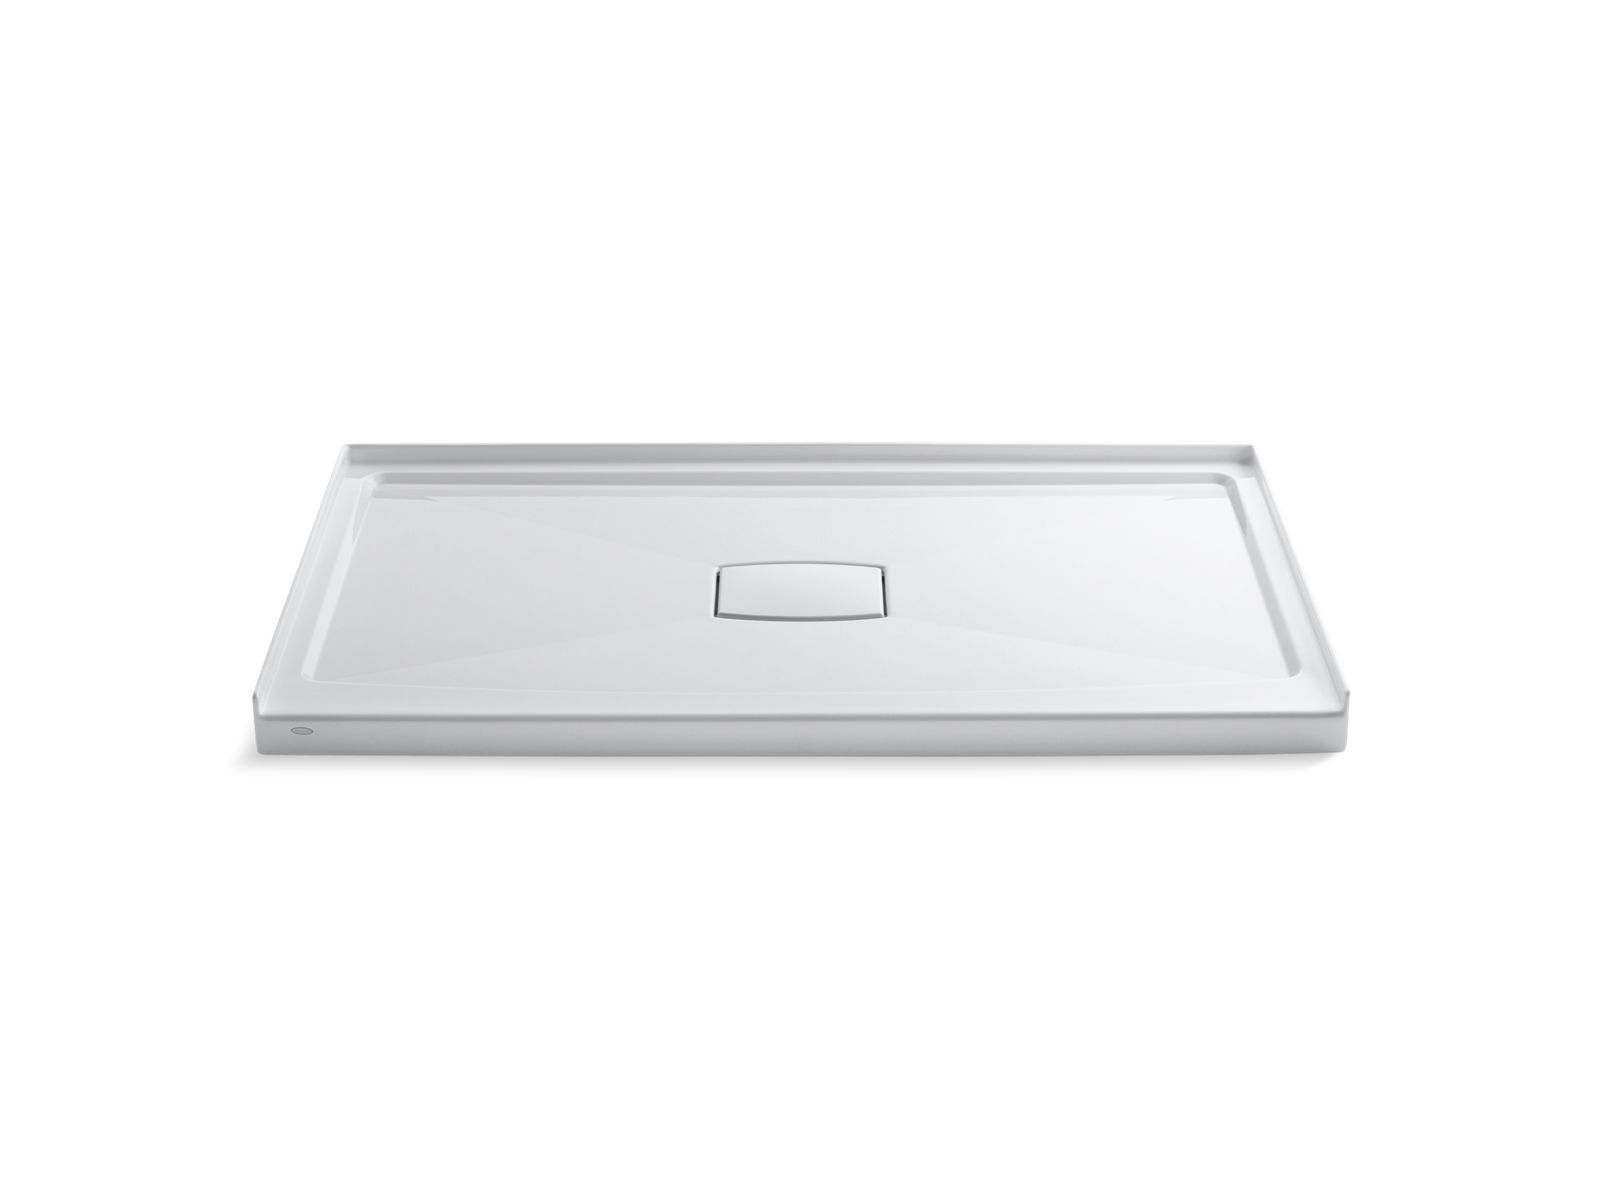 Fantastisch Archer Shower Base, 60 Inch Rectangular | K 9479 | KOHLER